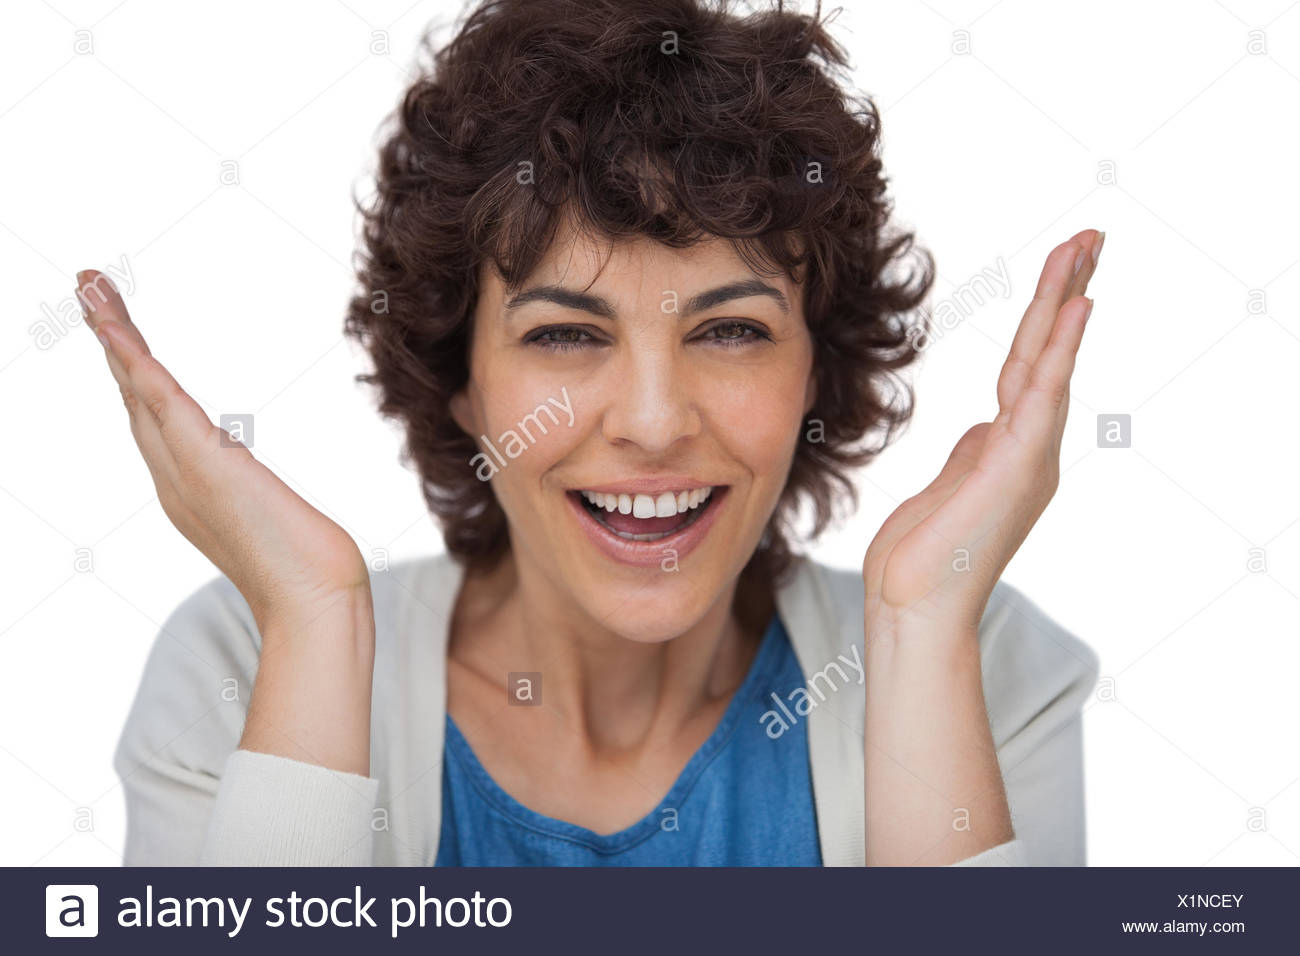 Shocked woman looking at the camera - Stock Image